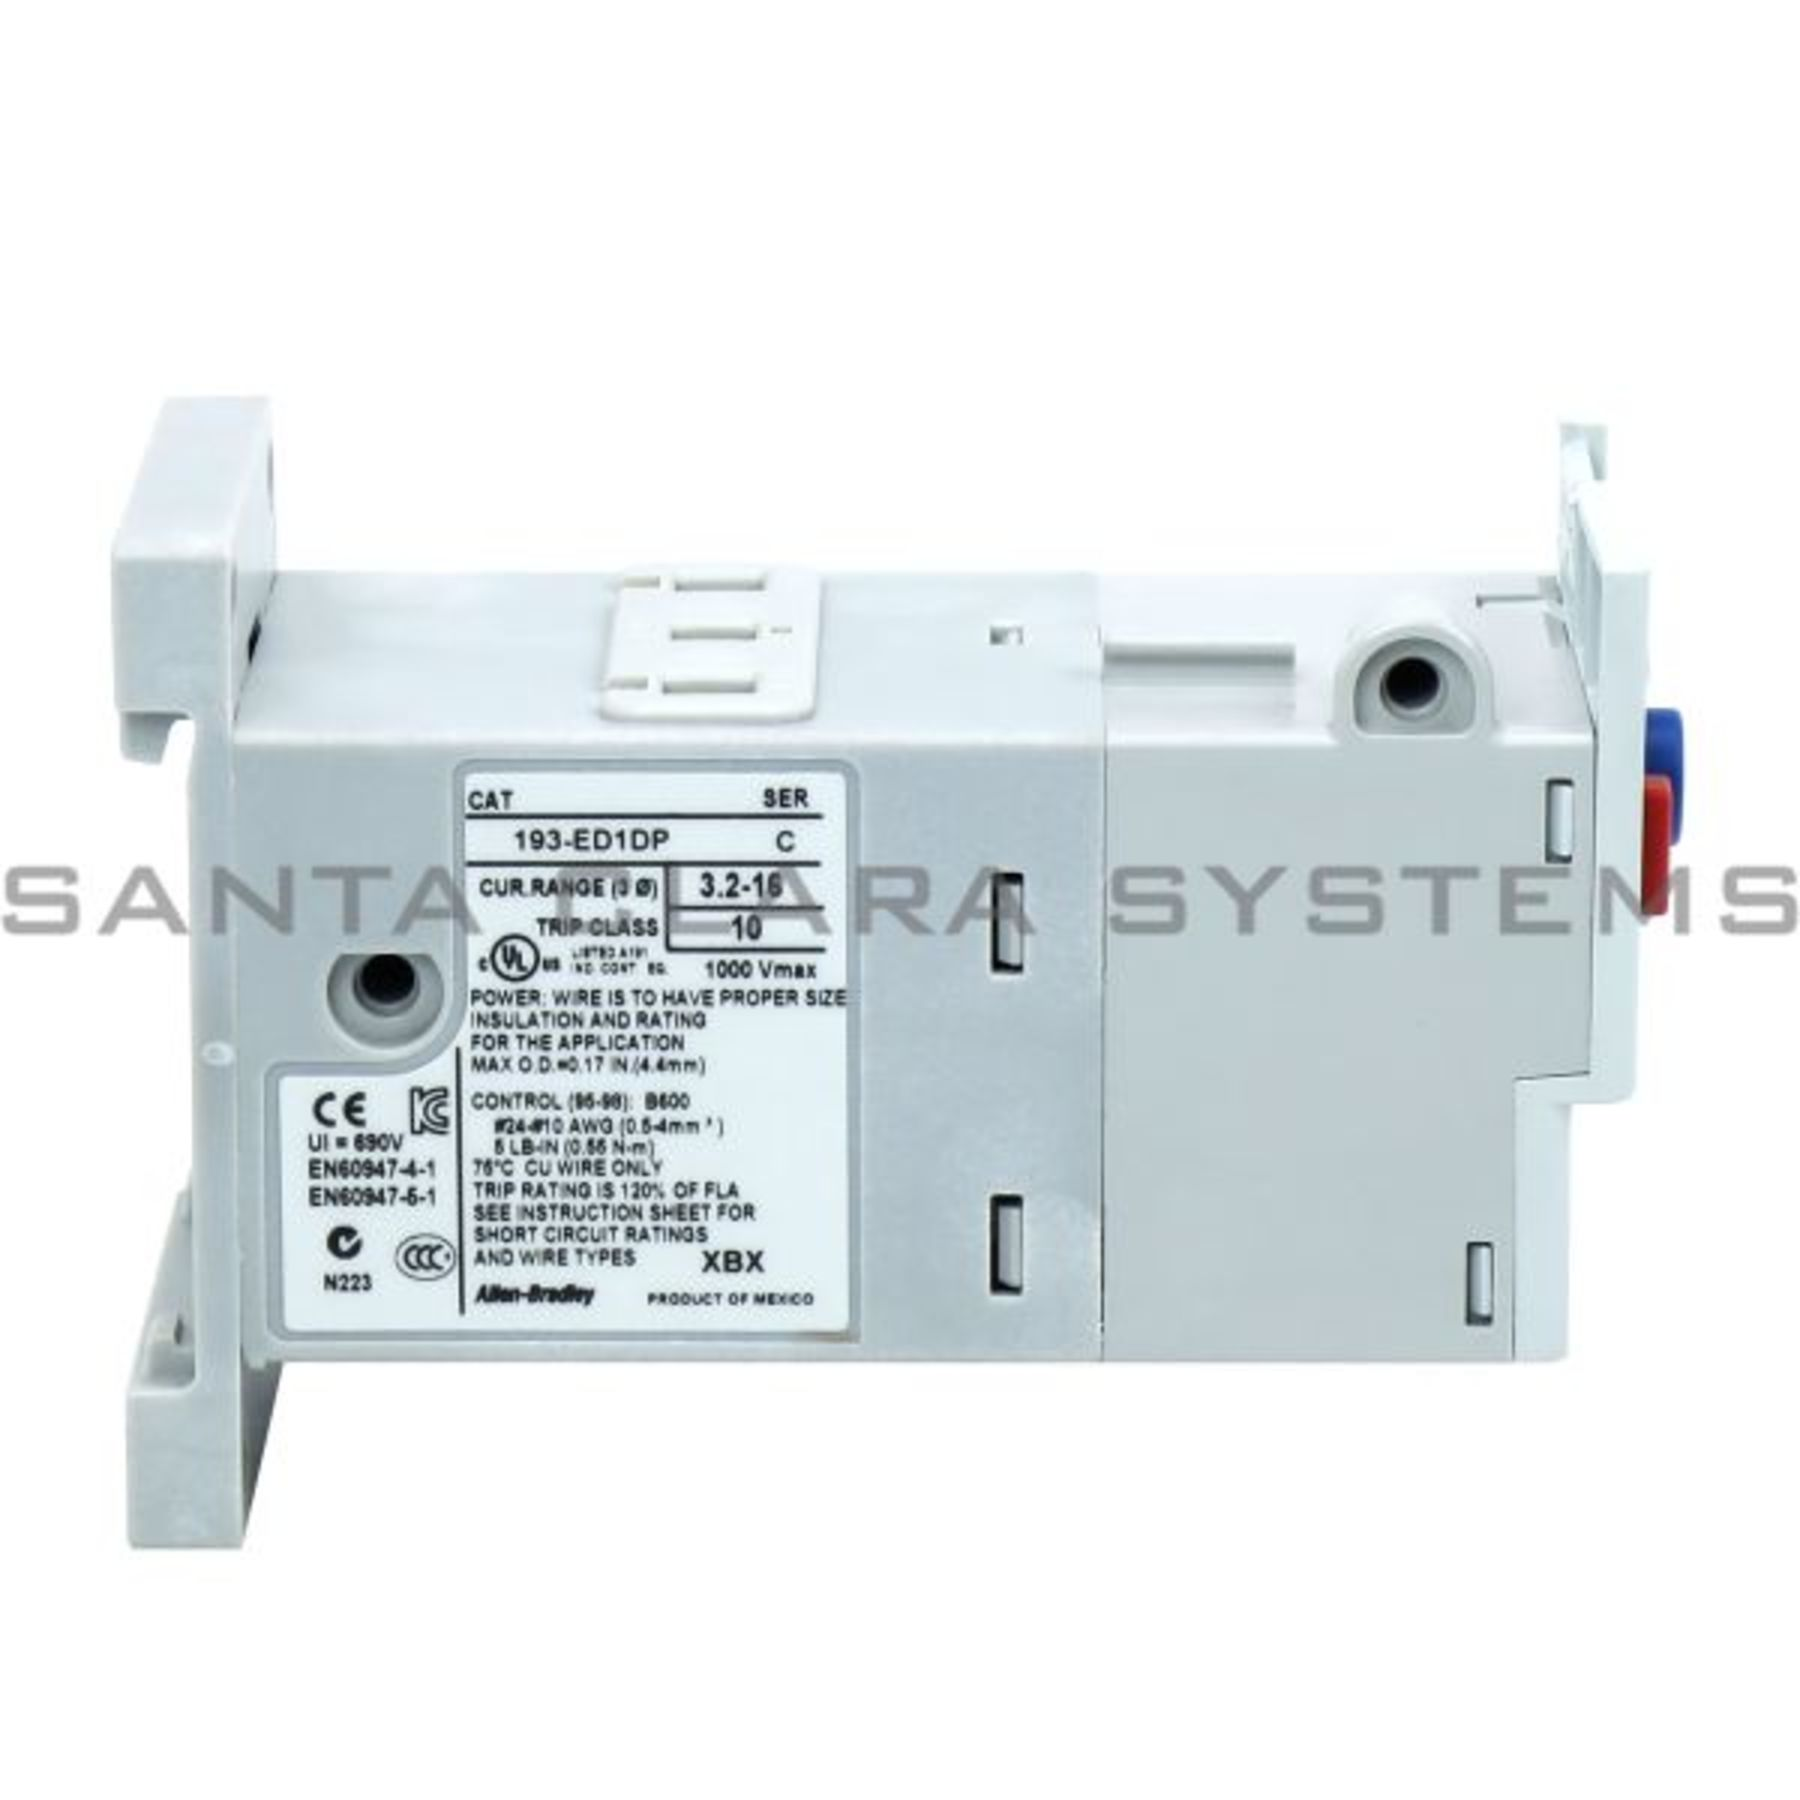 193-ED1DP Allen Bradley In stock and ready to ship - Santa Clara Systems